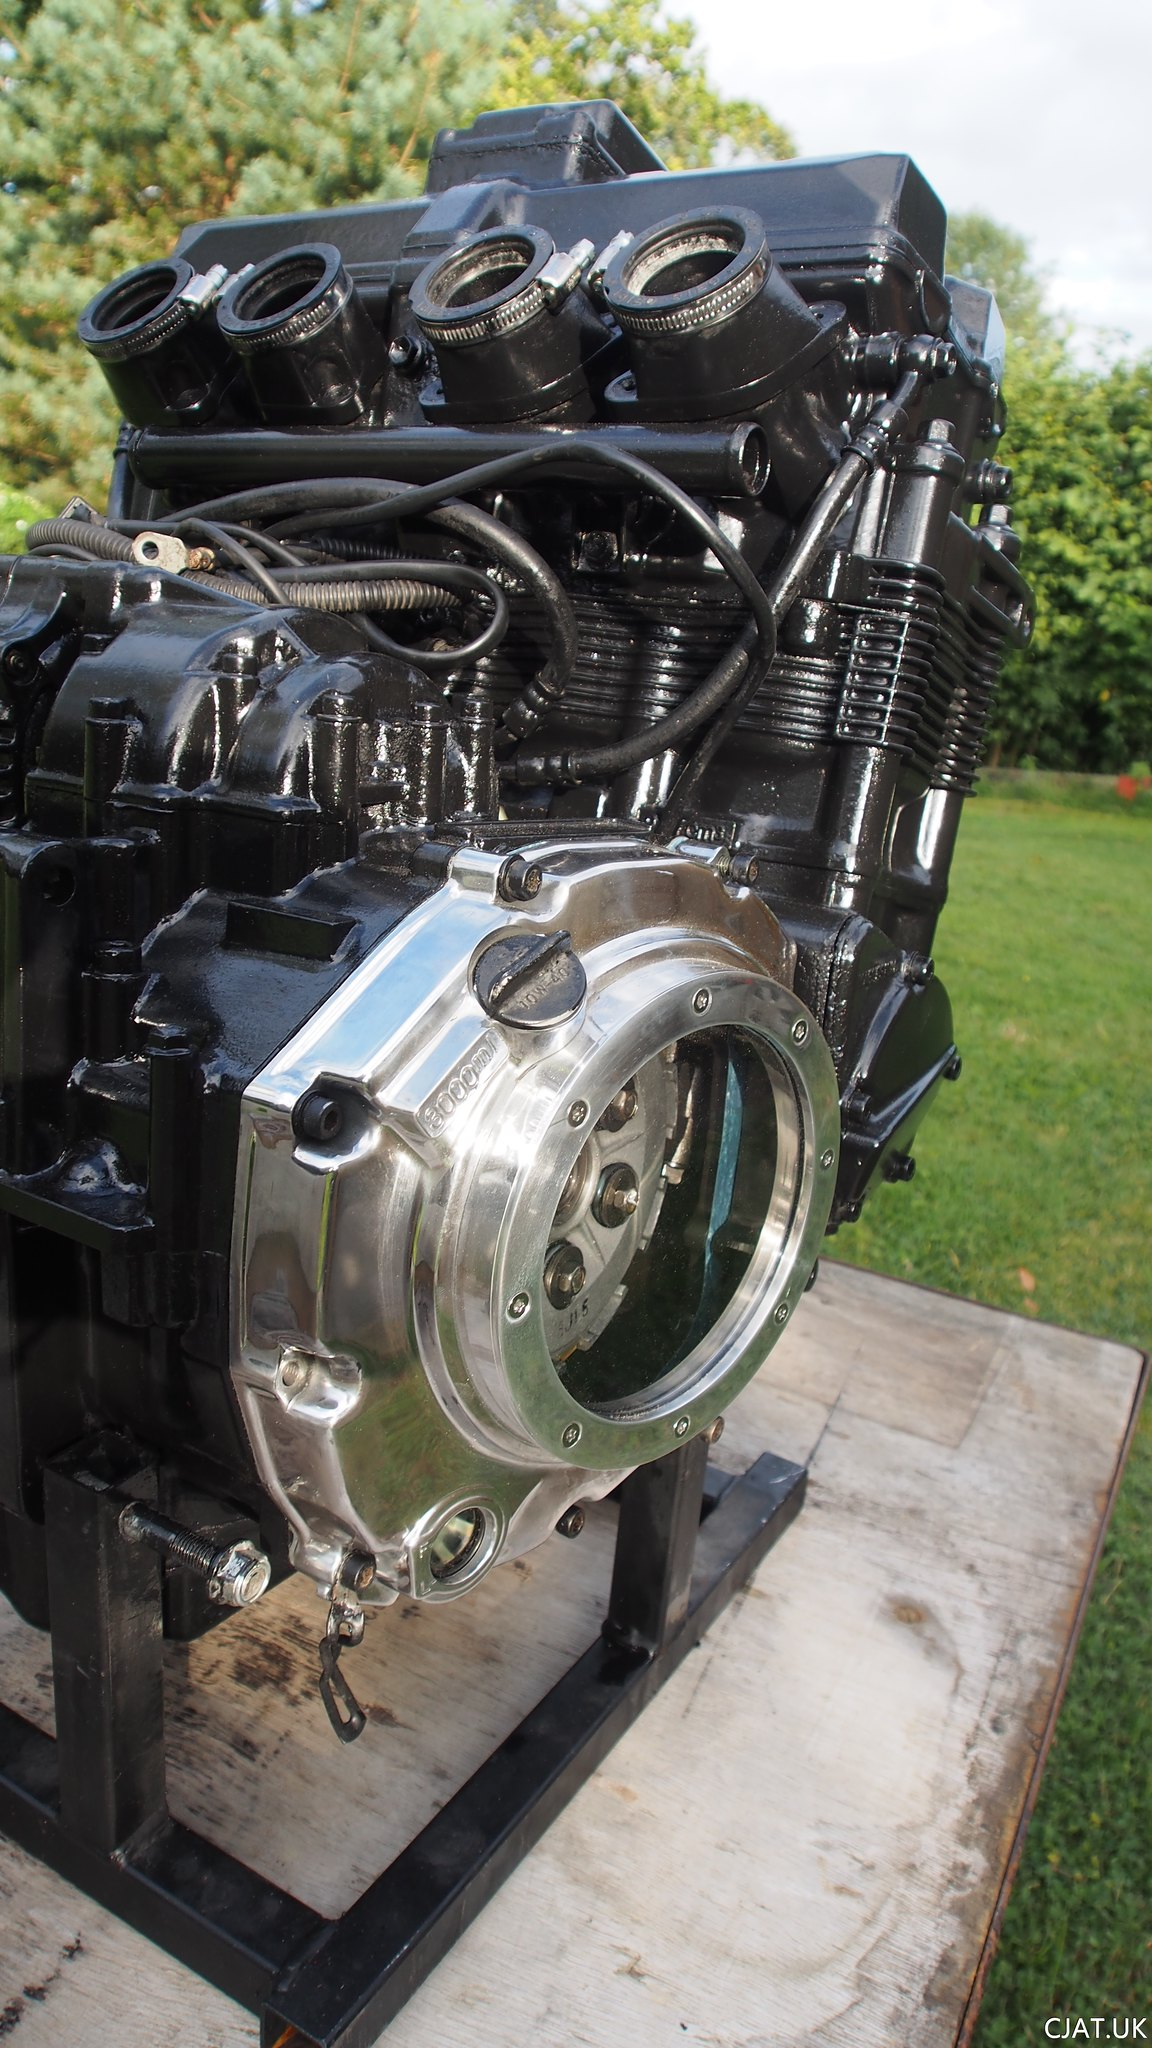 Suzuki RF900 StreetFighter newly painted engine with upgraded window clutch cover